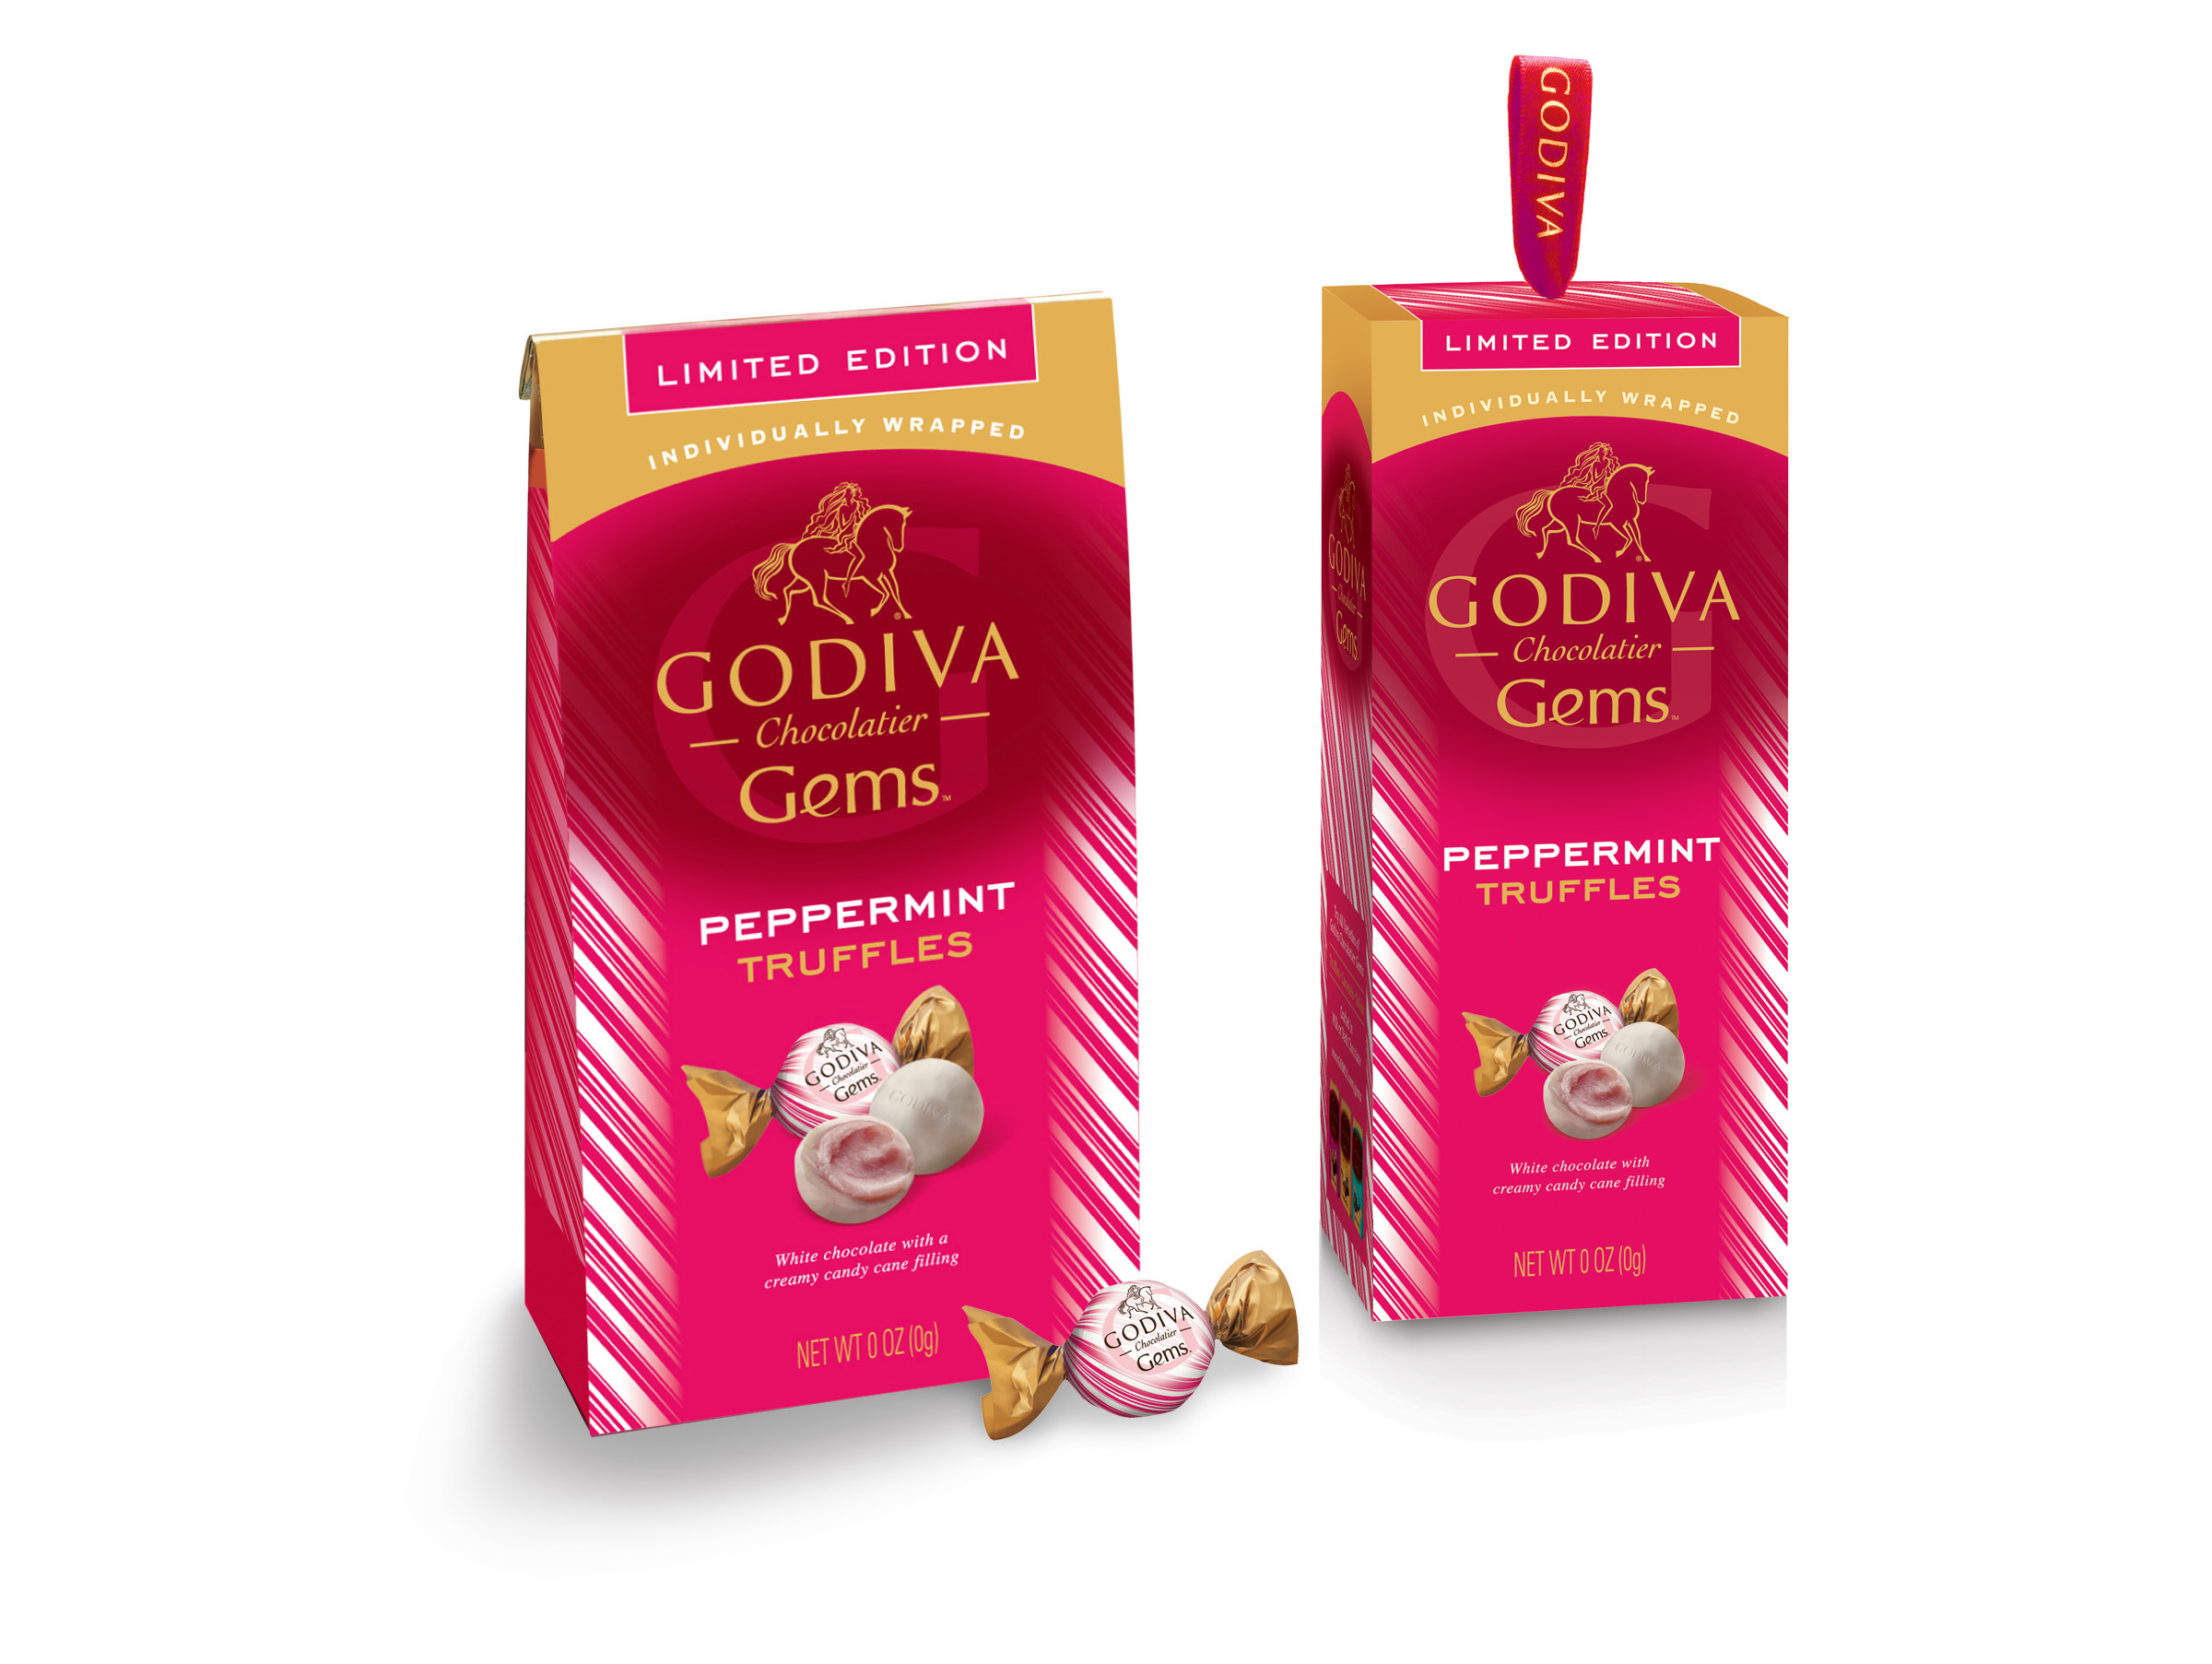 Godiva Gems Package Design - Holiday Peppermint